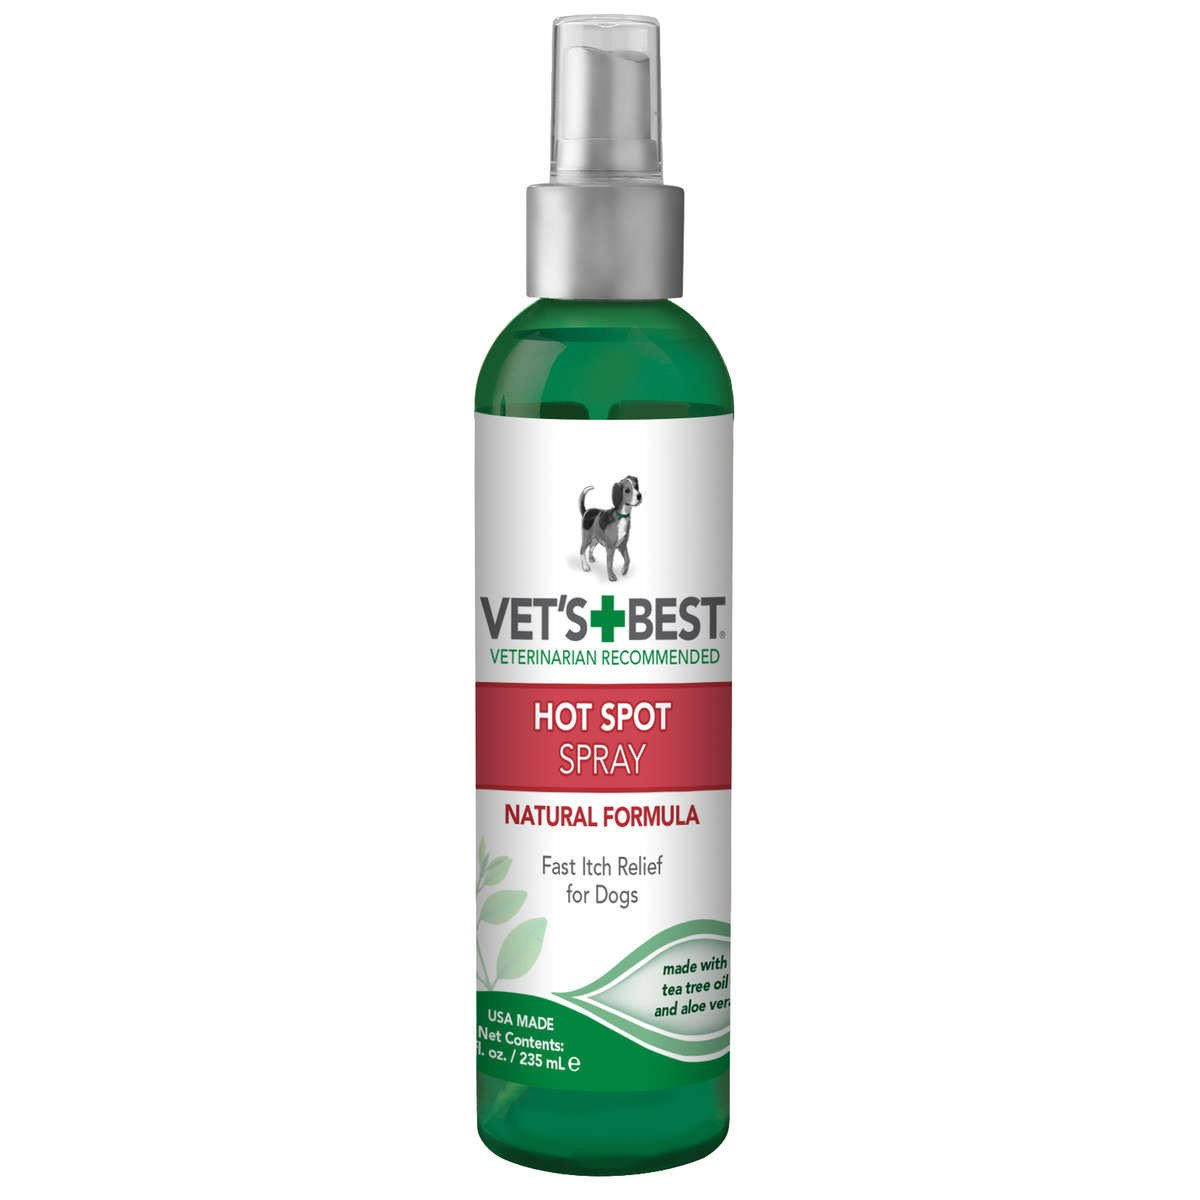 Vet's Best Hot Spot Spray - Tea Tree Oil & Aloe Vera, 8oz